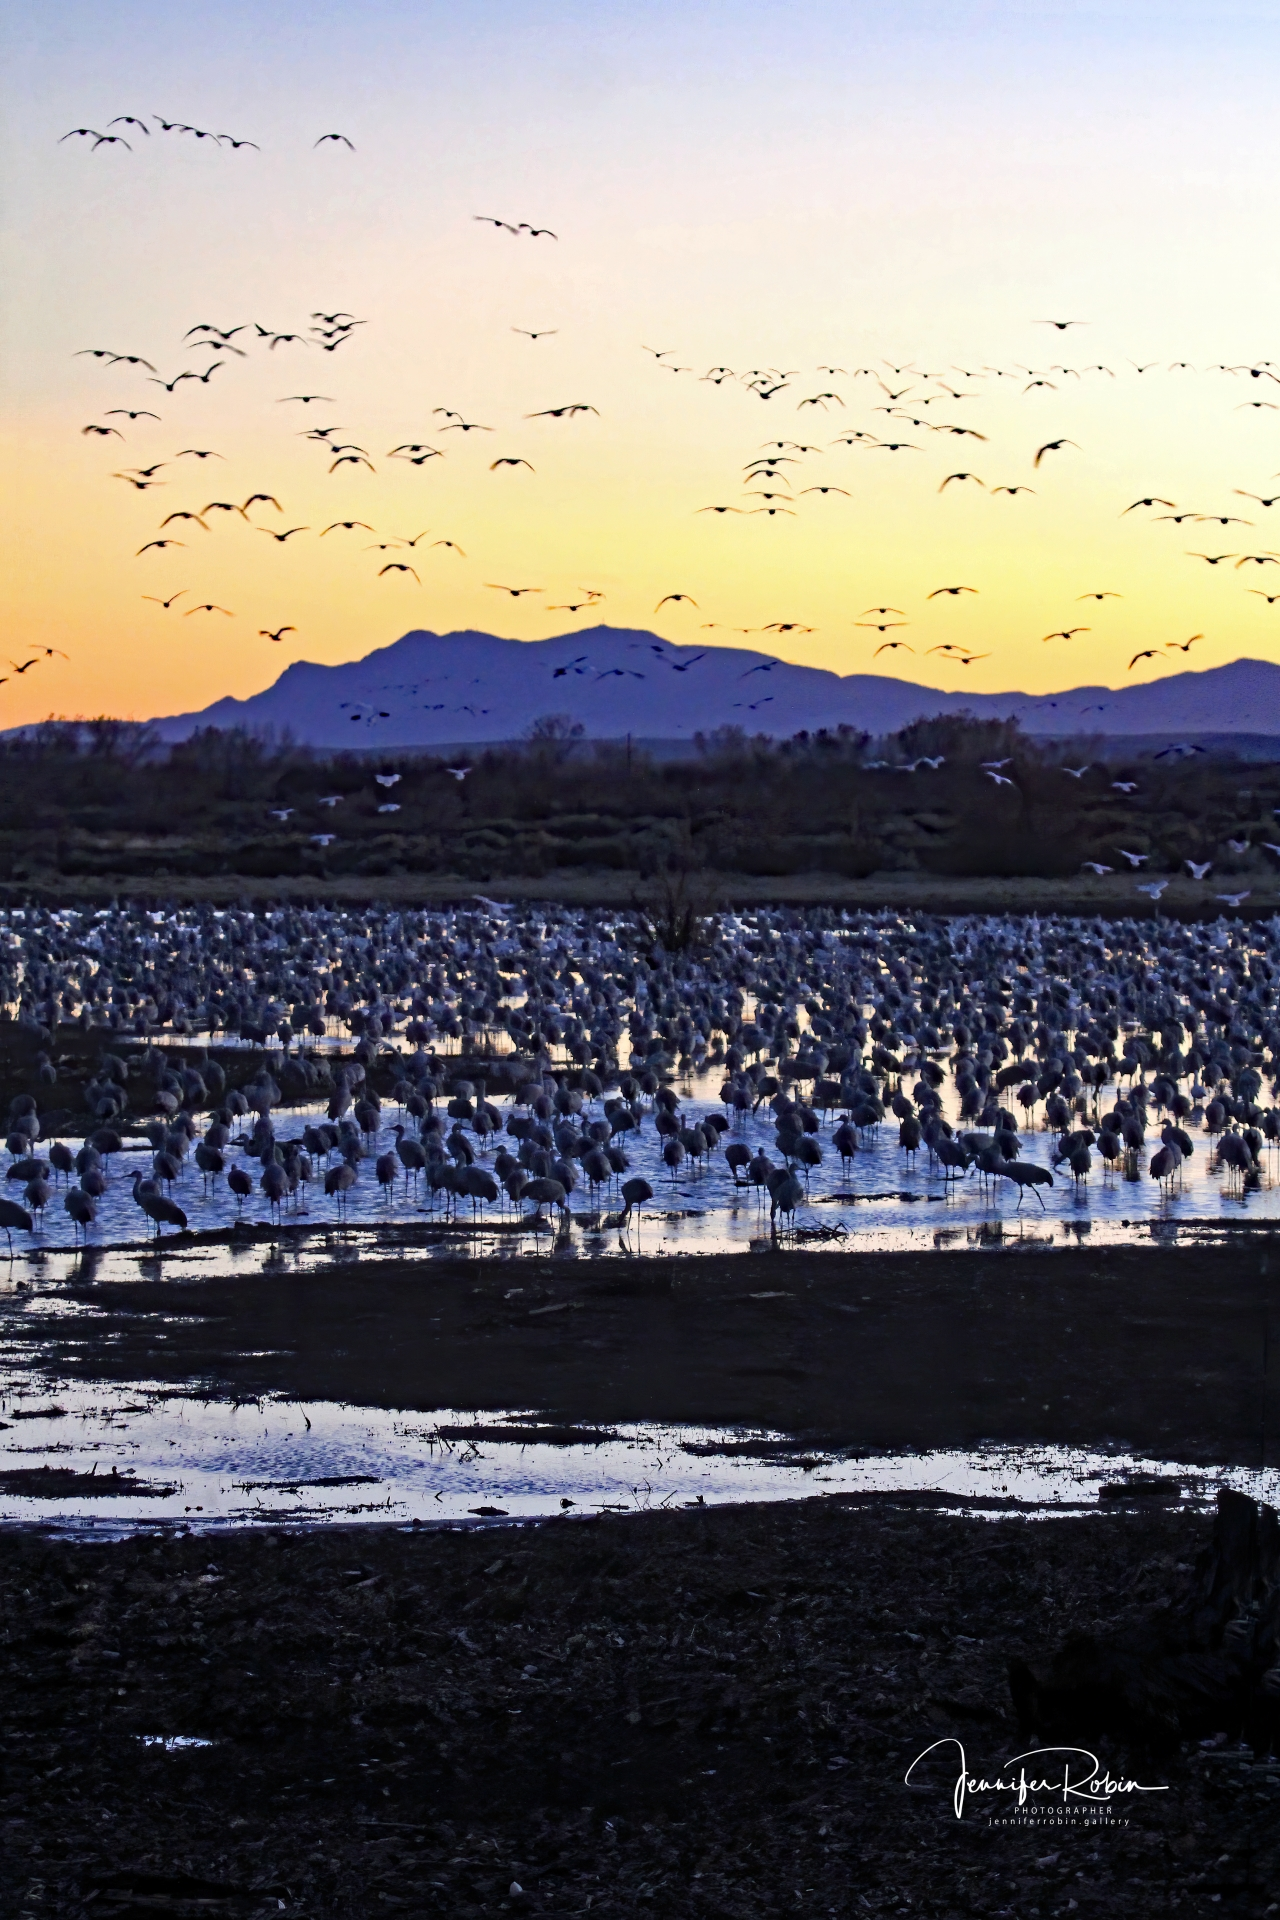 Sandhill Cranes and snow geese at sunset at Ladd S Gordon Waterfowl Complex - Bernardo Wildlife Area